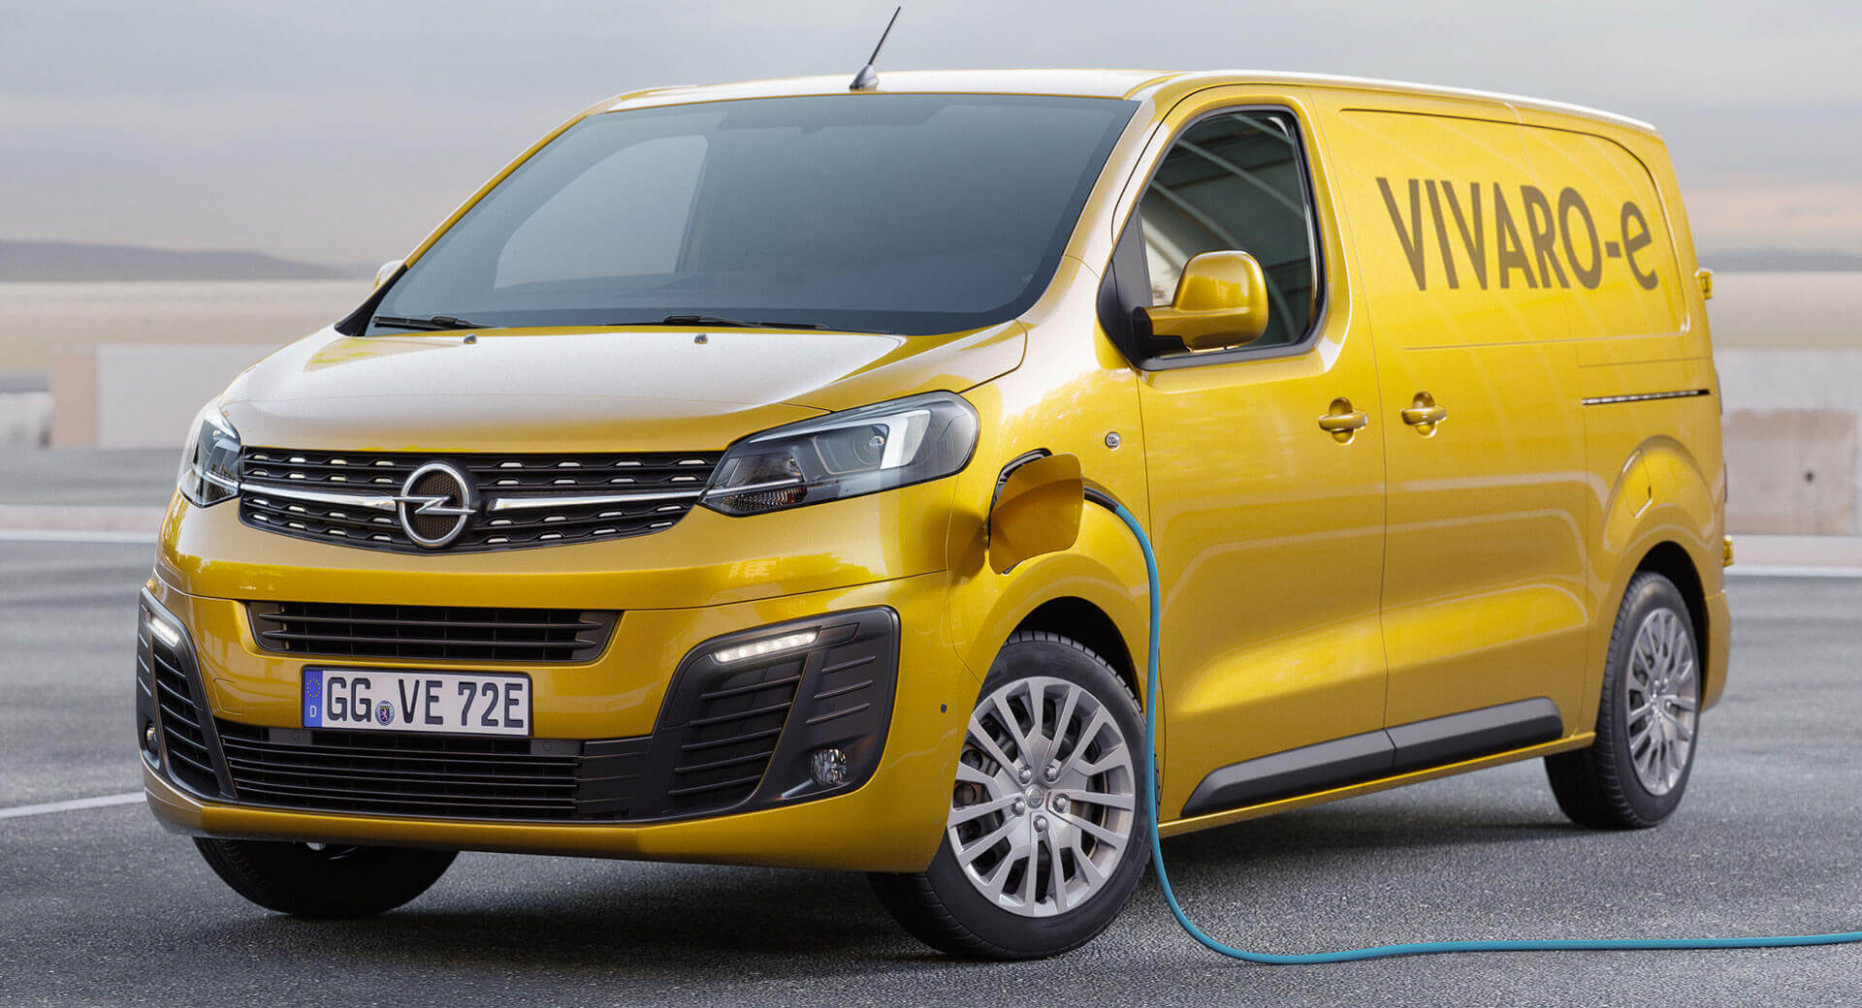 Redesign and Concept 2022 Opel Vivaro